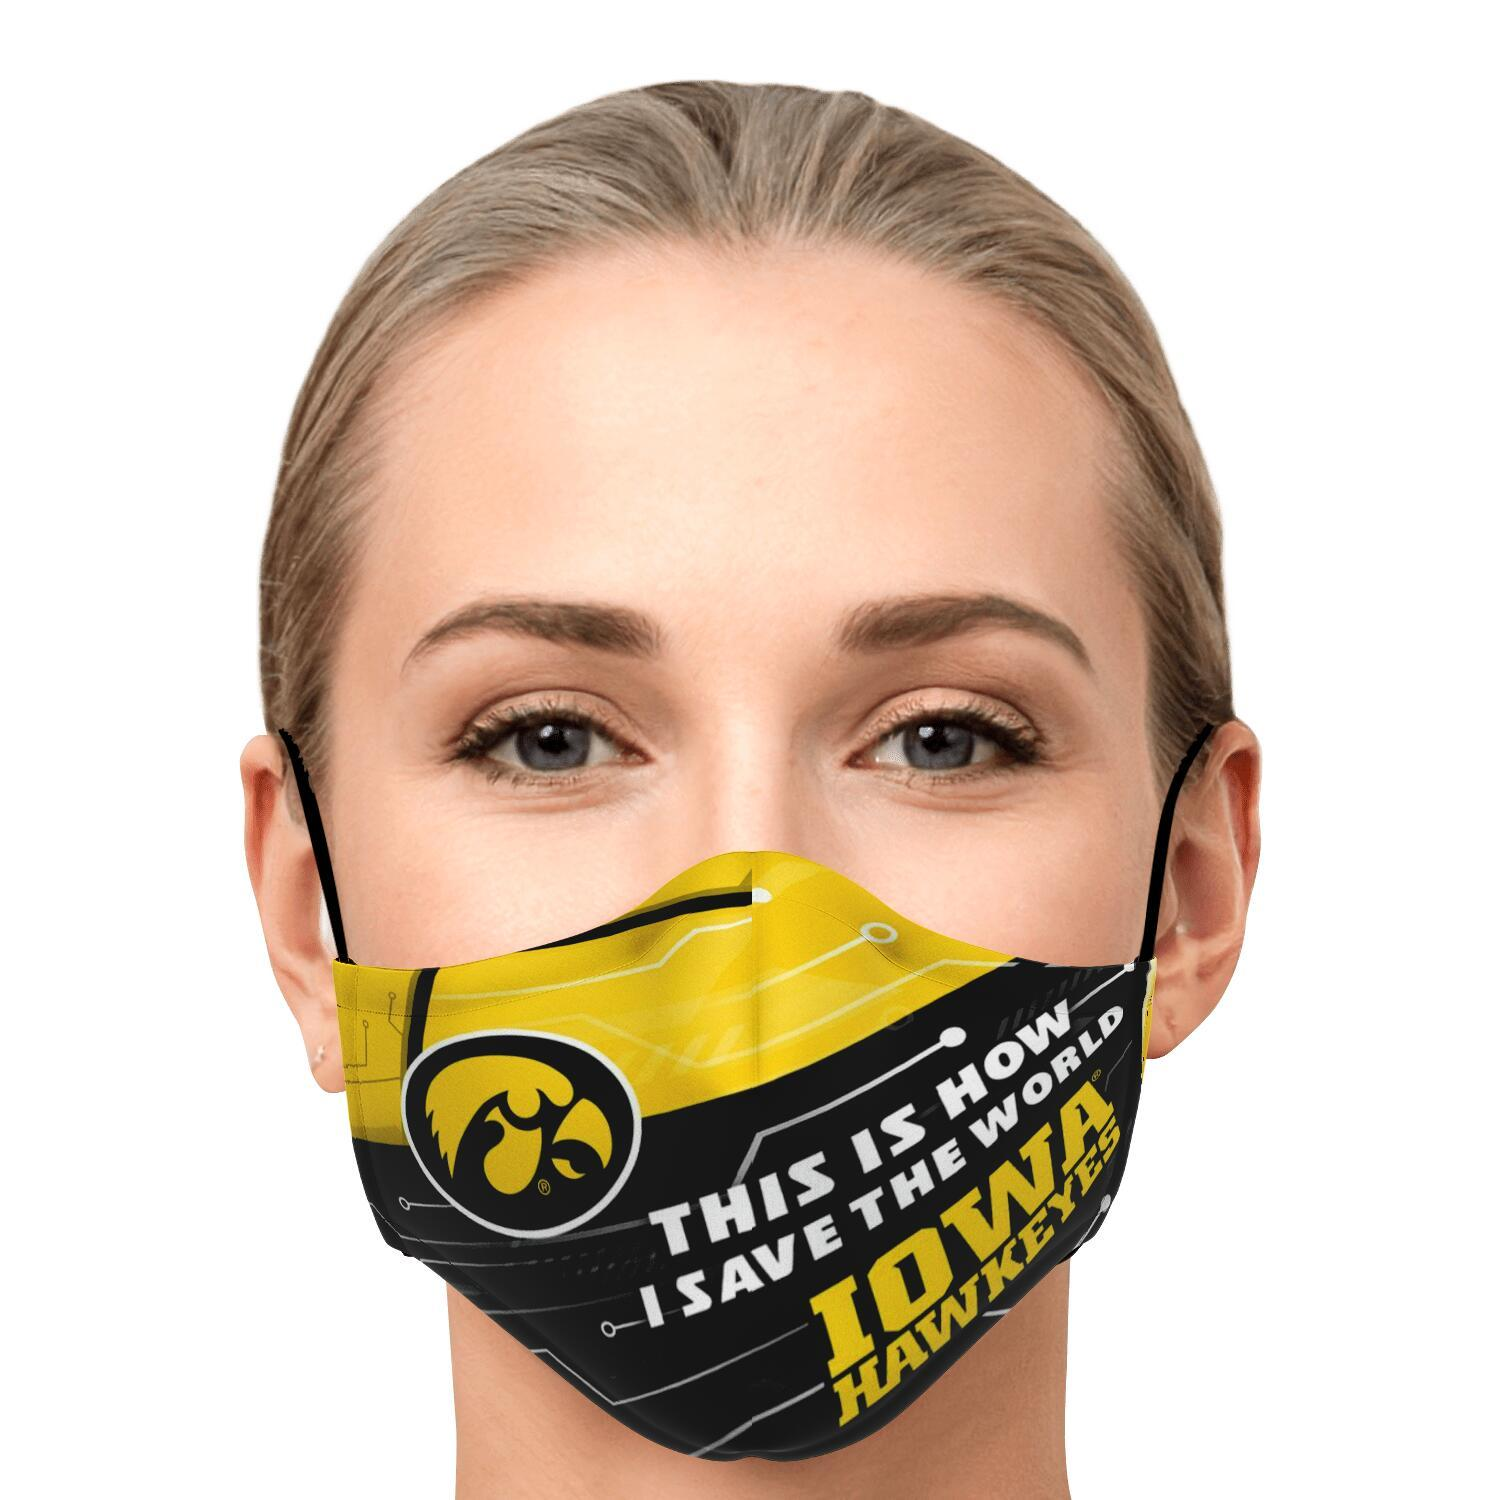 This Is How I Save The World Iowa Hawkeyes Face Masks 1